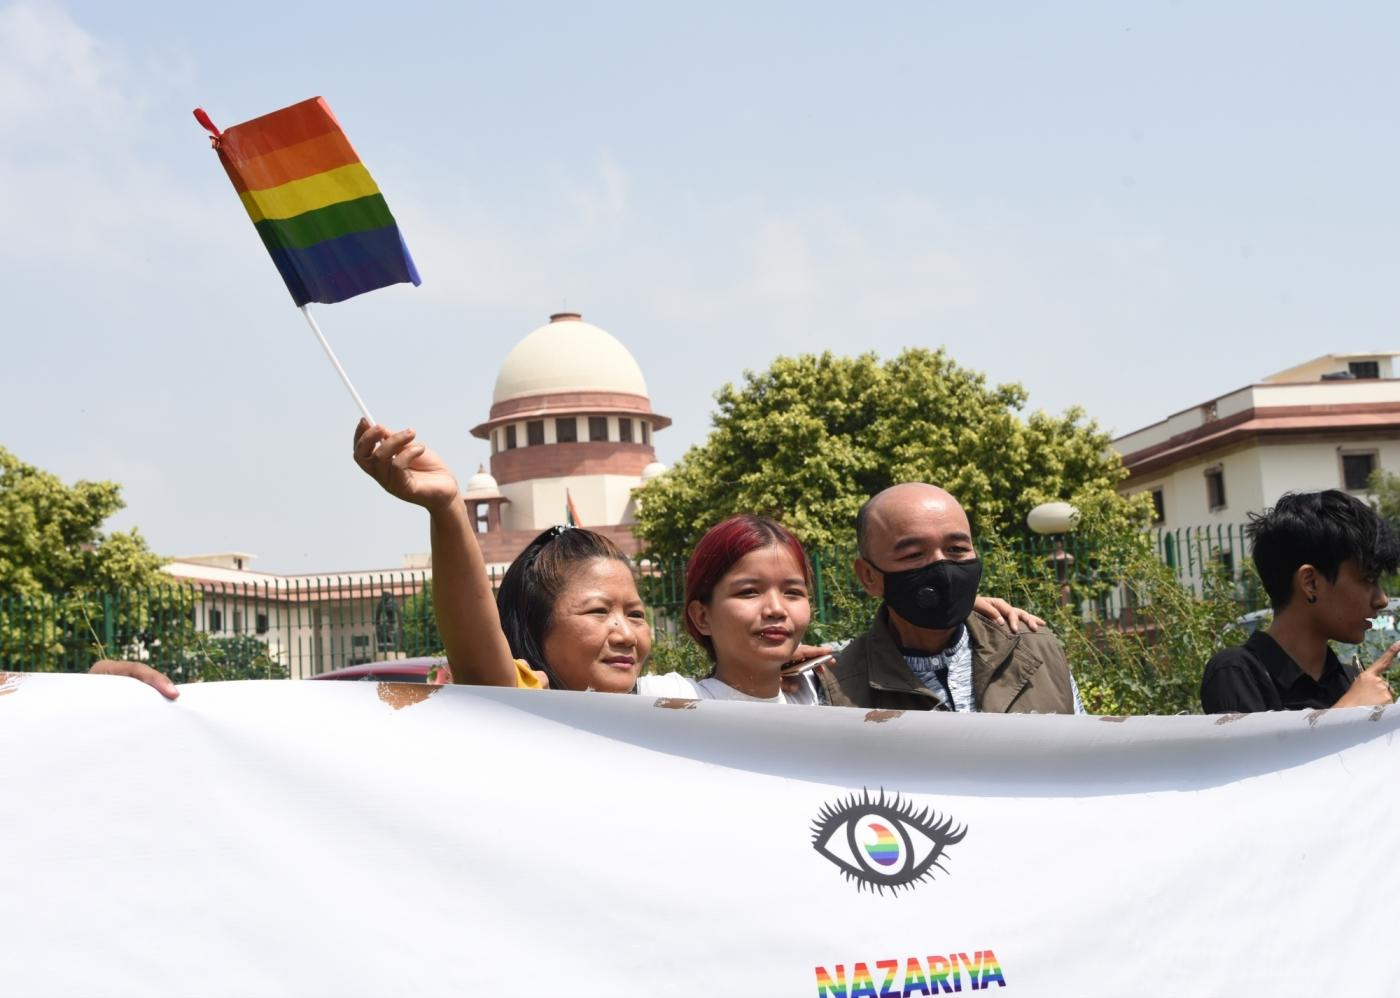 """New Delhi: LGBTIQ (lesbian, gay, bisexual, transgender/transsexual, intersex and queer/questioning) supporters celebrate after the Supreme Court in a landmark decision decriminalised homosexuality by declaring Section 377, the penal provision which criminalised gay sex, as """"manifestly arbitrary""""; in New Delhi on Sept 6, 2018. (Photo: IANS) by ."""